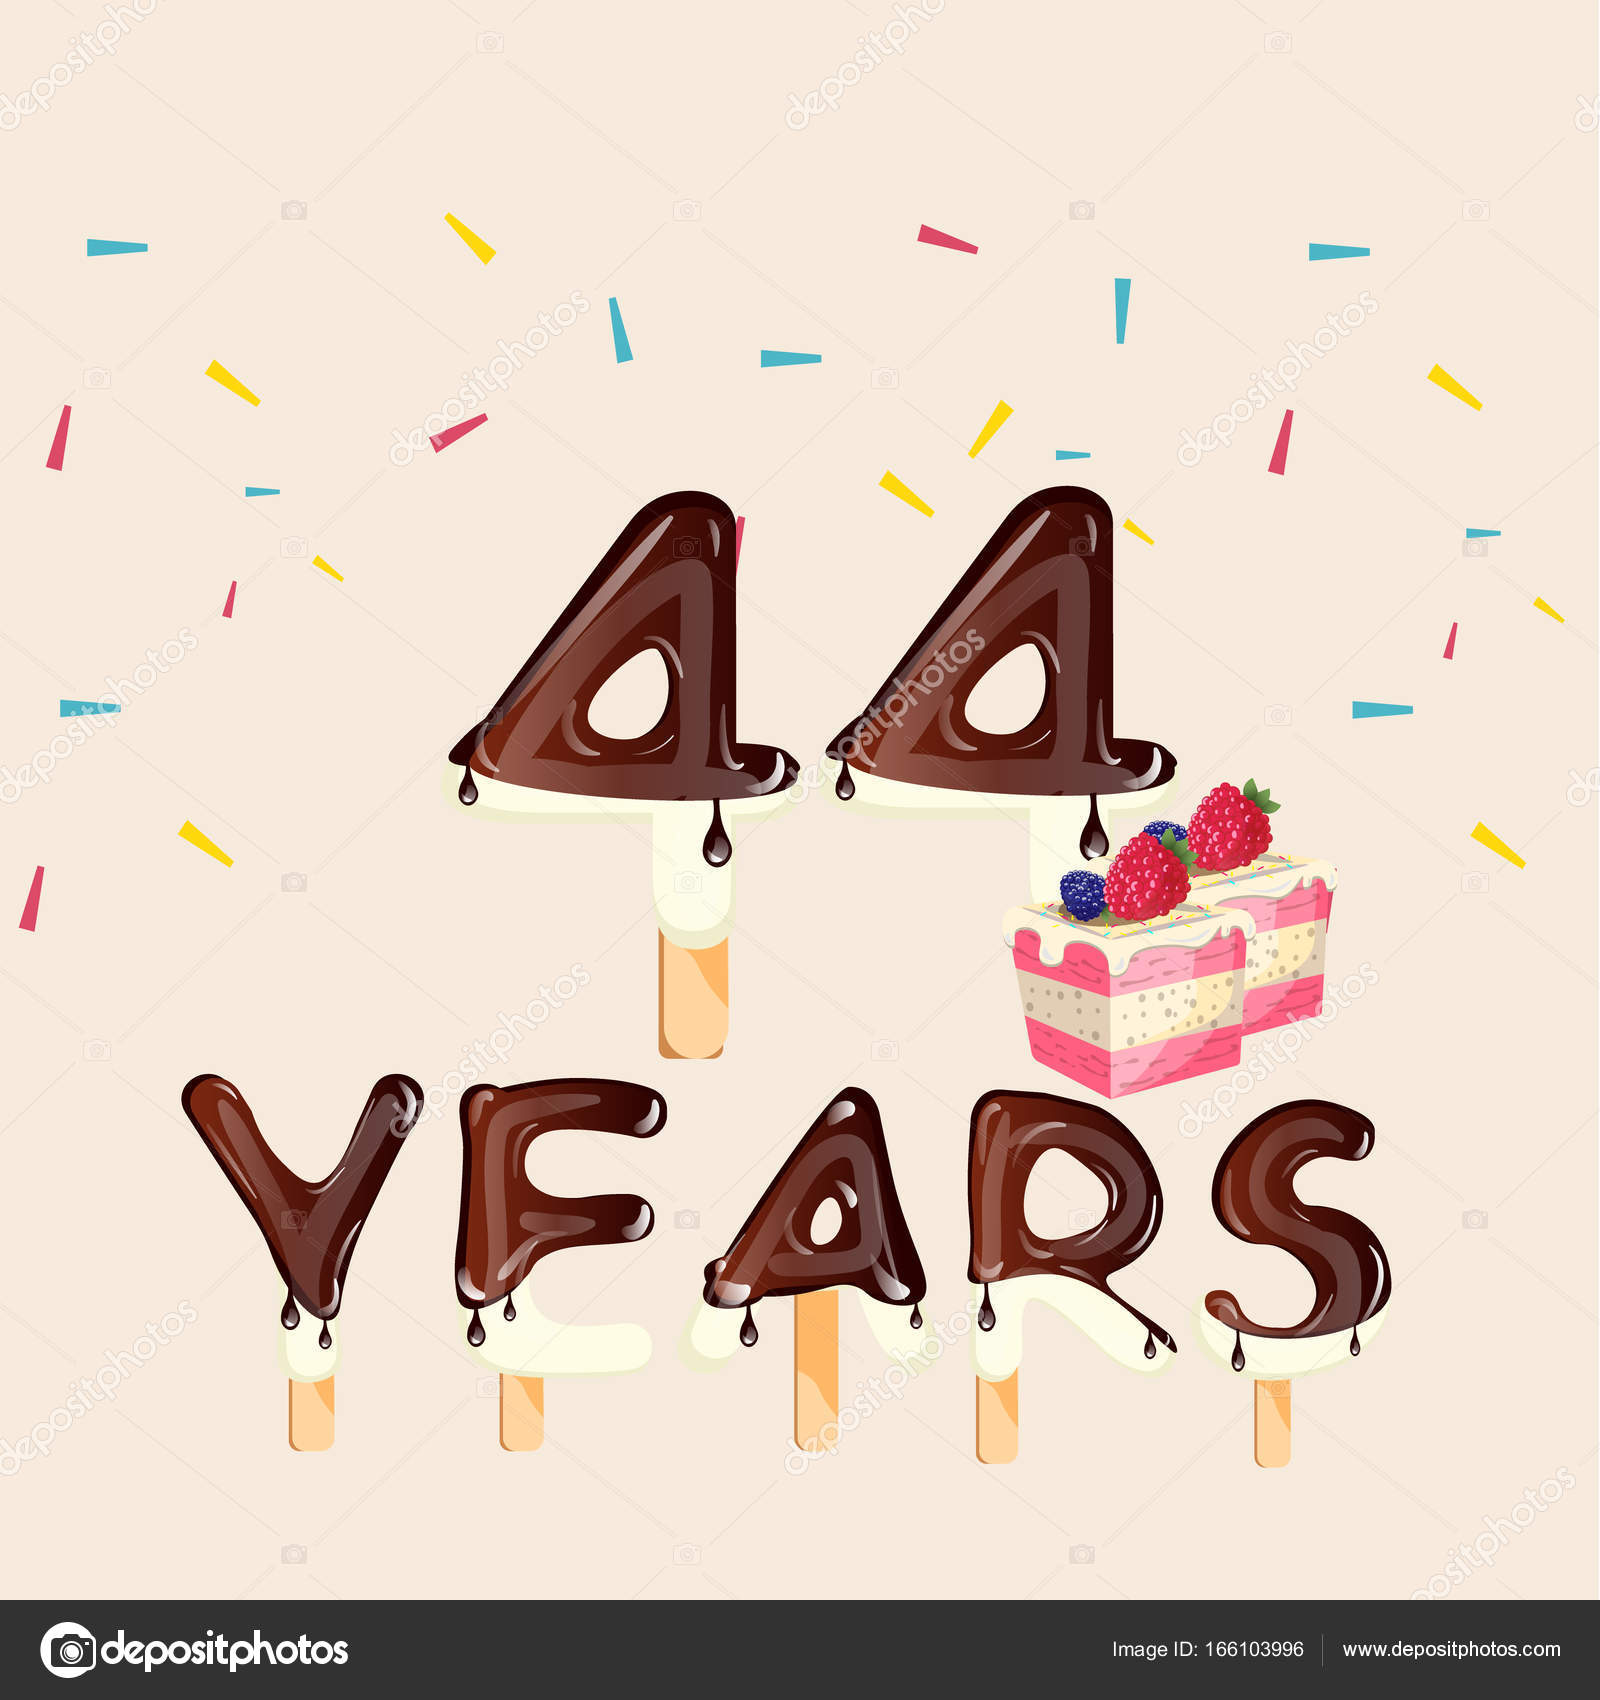 44th wedding anniversary stock vectors royalty free 44th wedding 44 years happy birthday card royalty free stock illustrations biocorpaavc Gallery